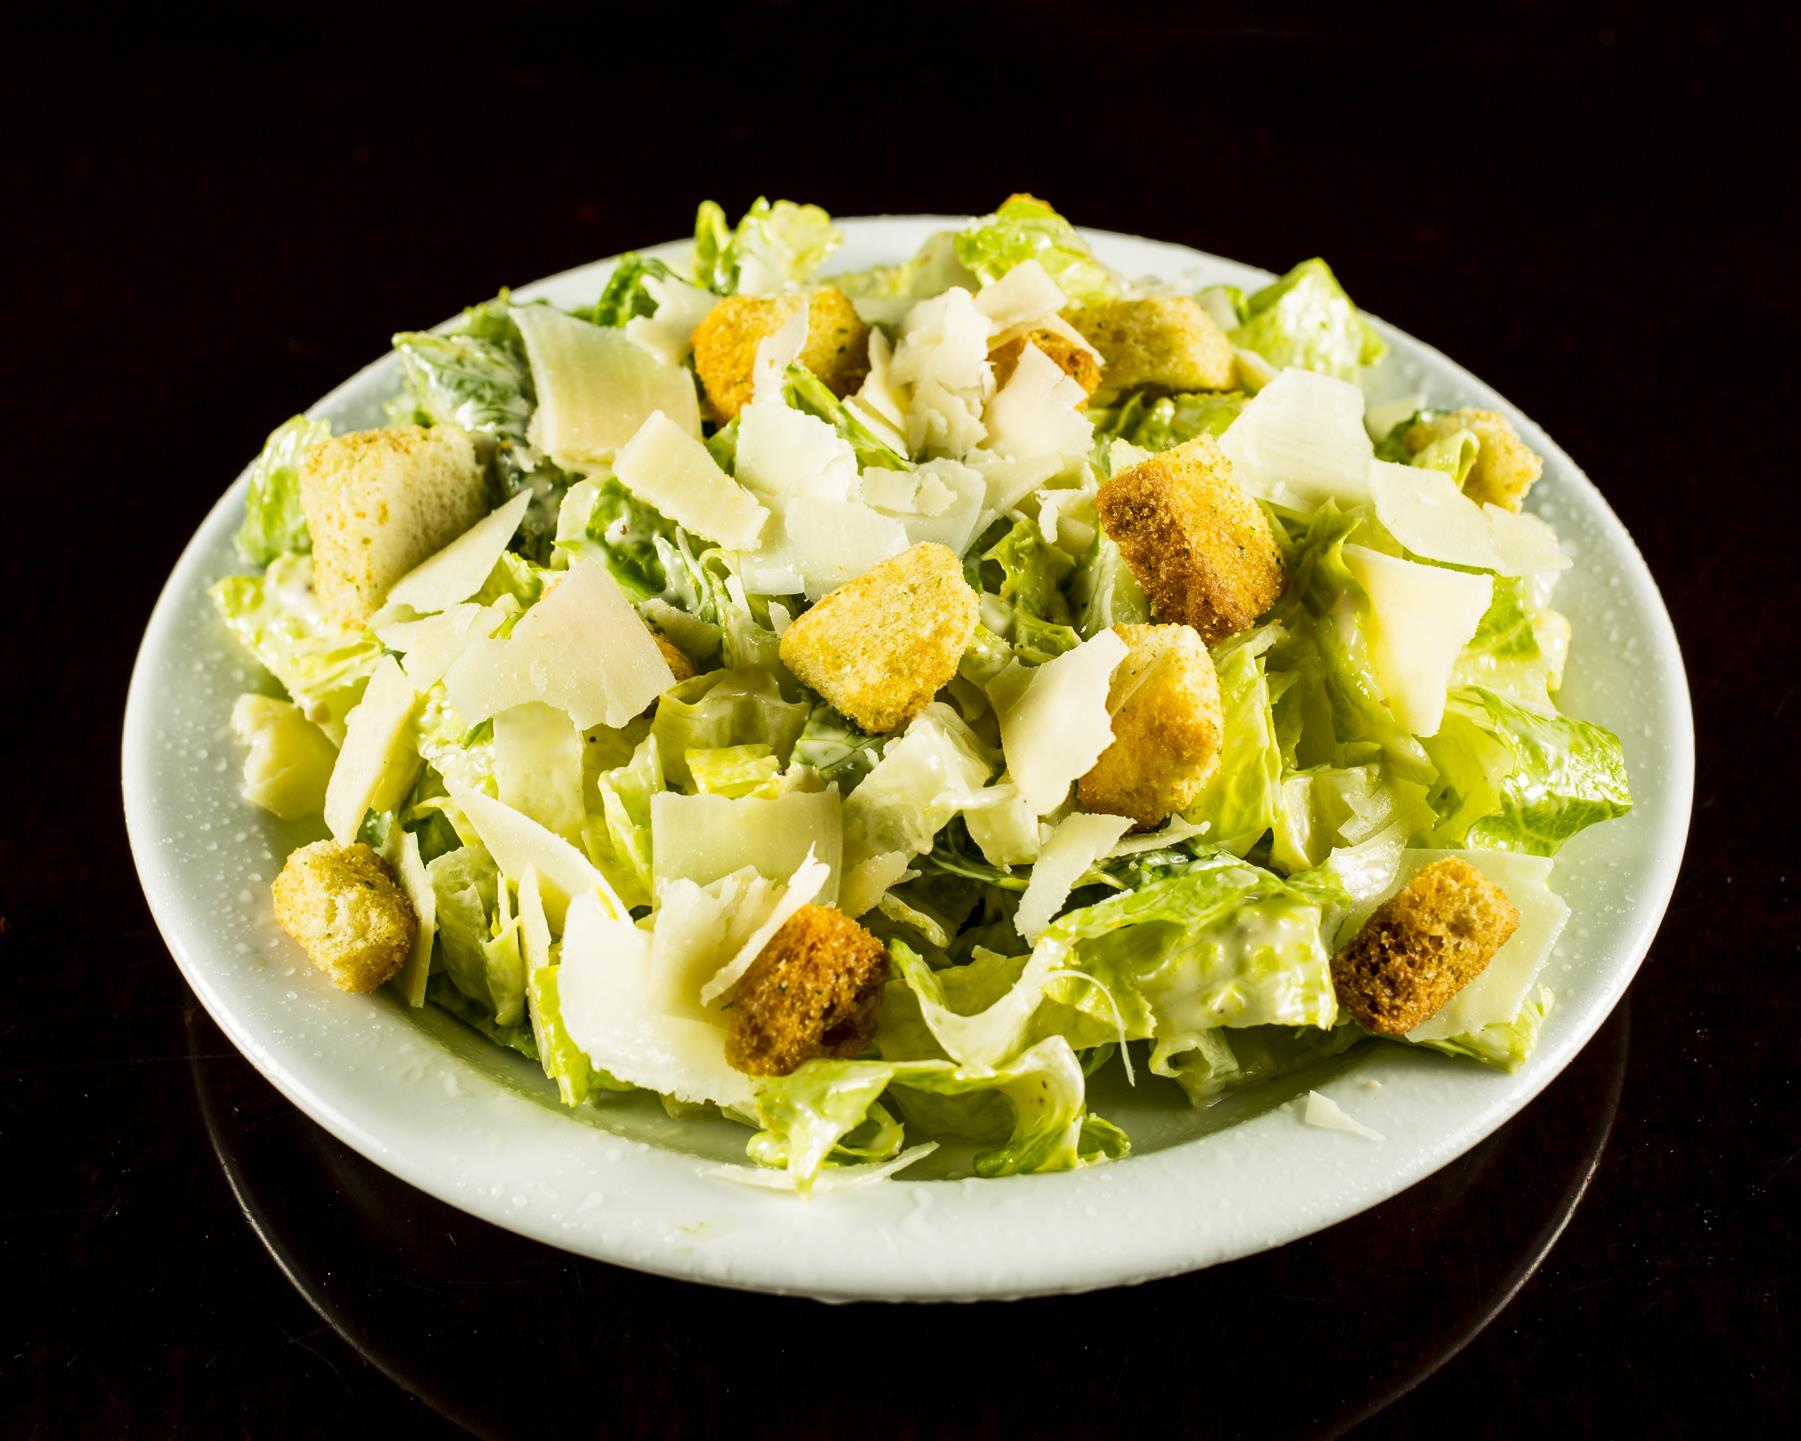 caesar salad topped with shredded cheese, croutons and dressing